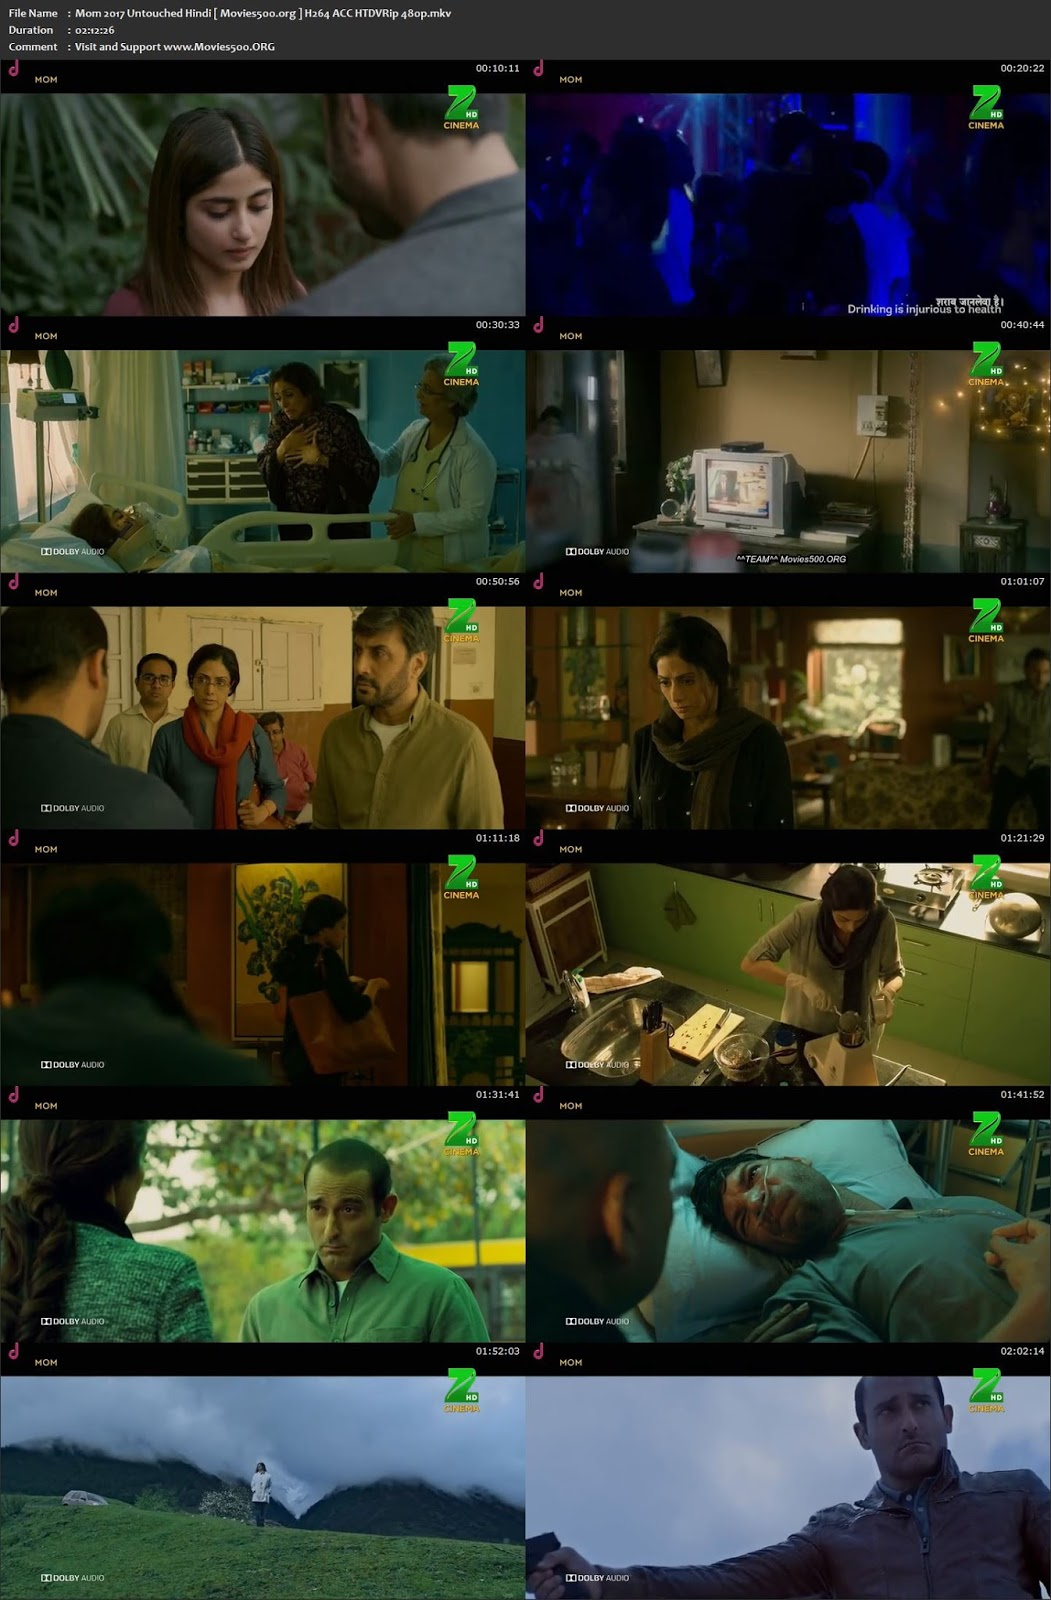 Mom 2017 Full Movie 200MB HEVC 480p Mobile at softwaresonly.com